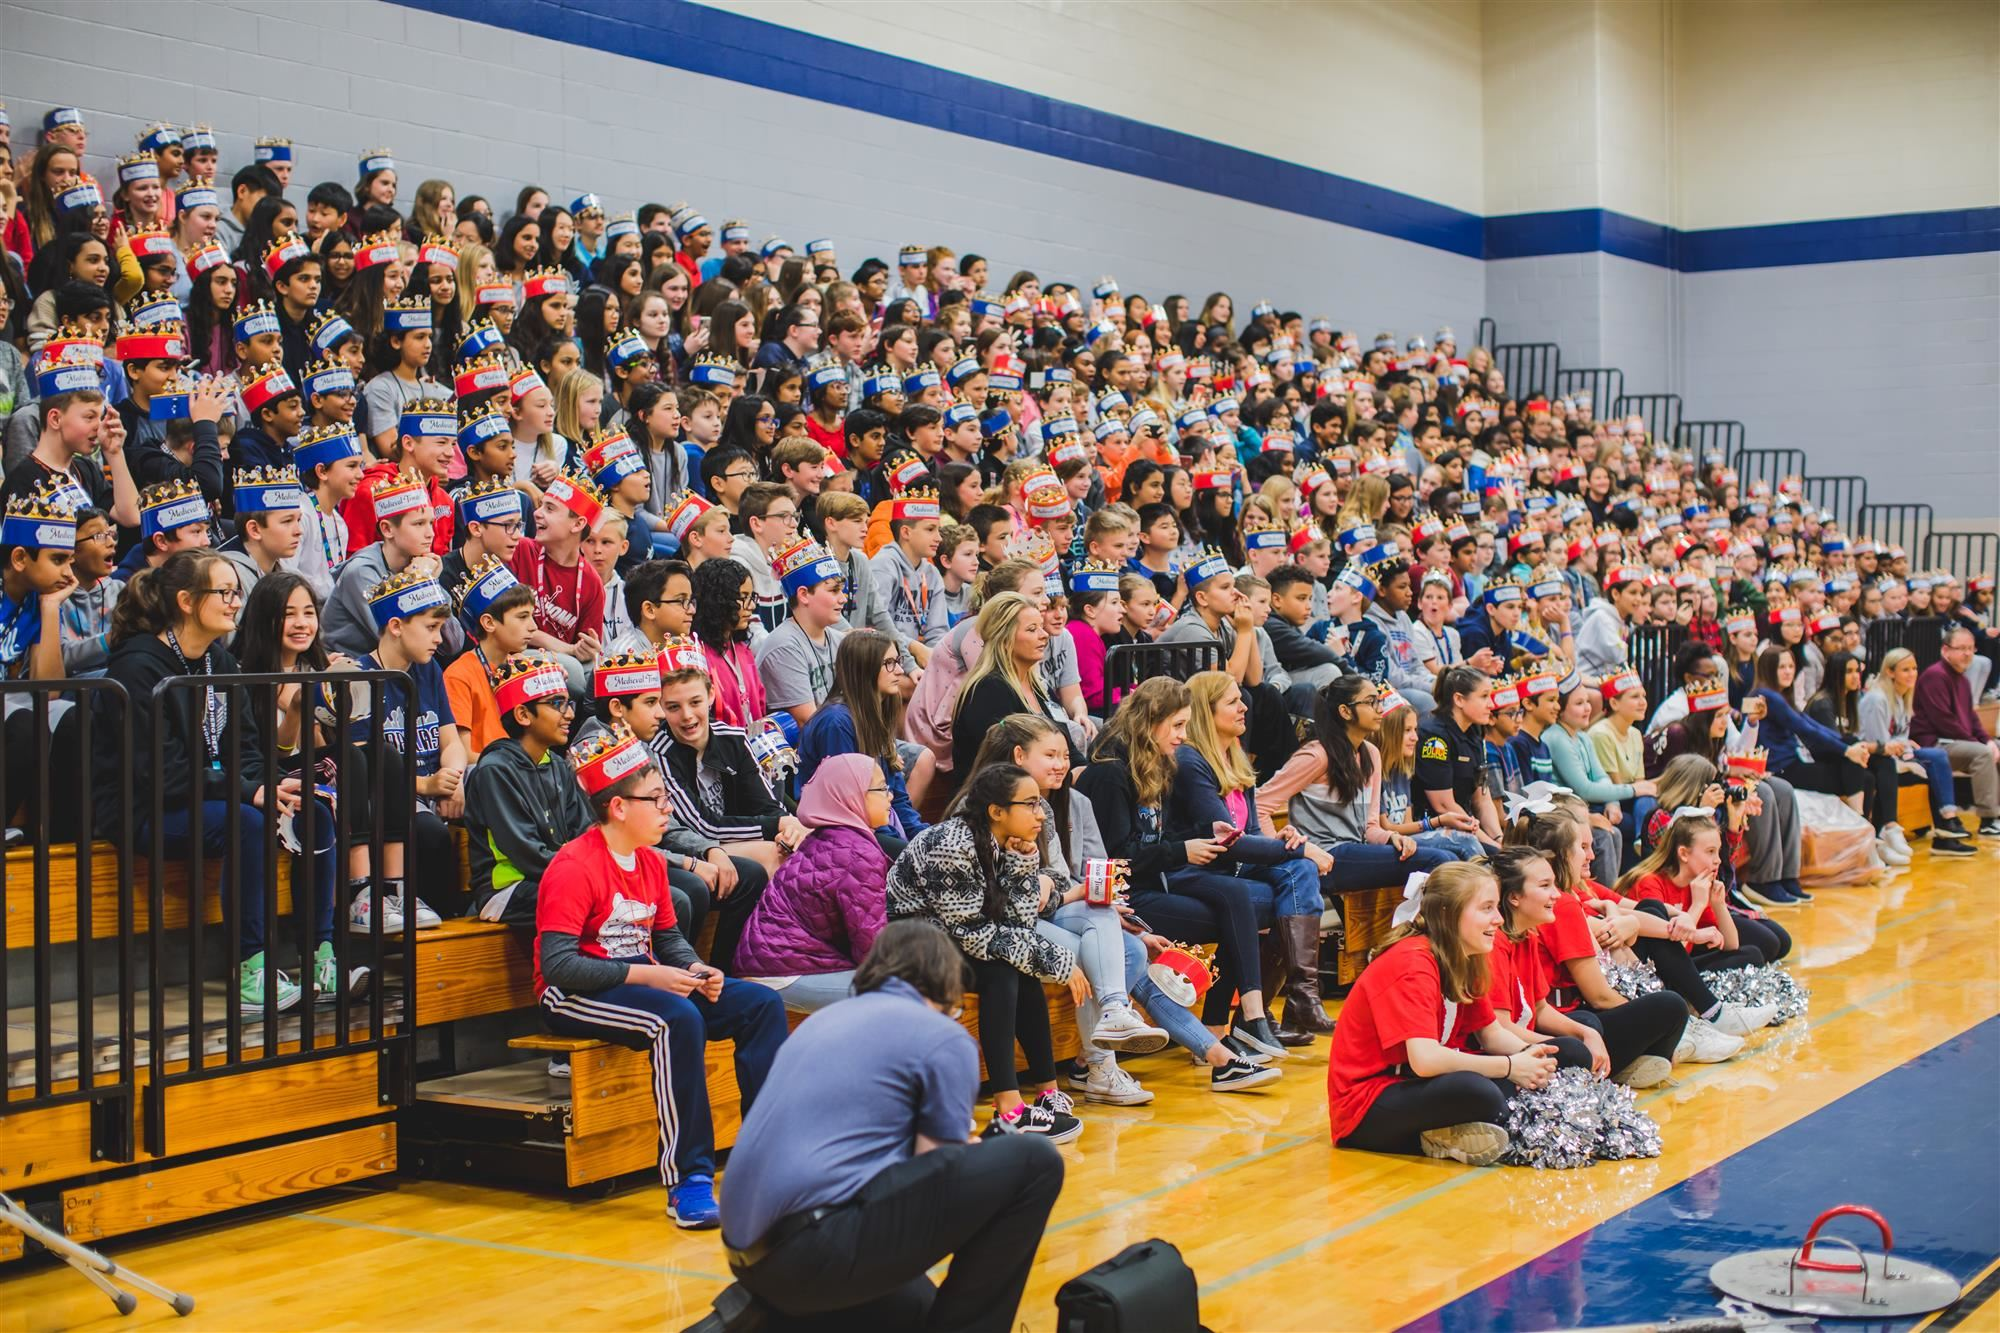 McKamy Middle School students watch Medieval Times Knights perform at their pep rally. 2019